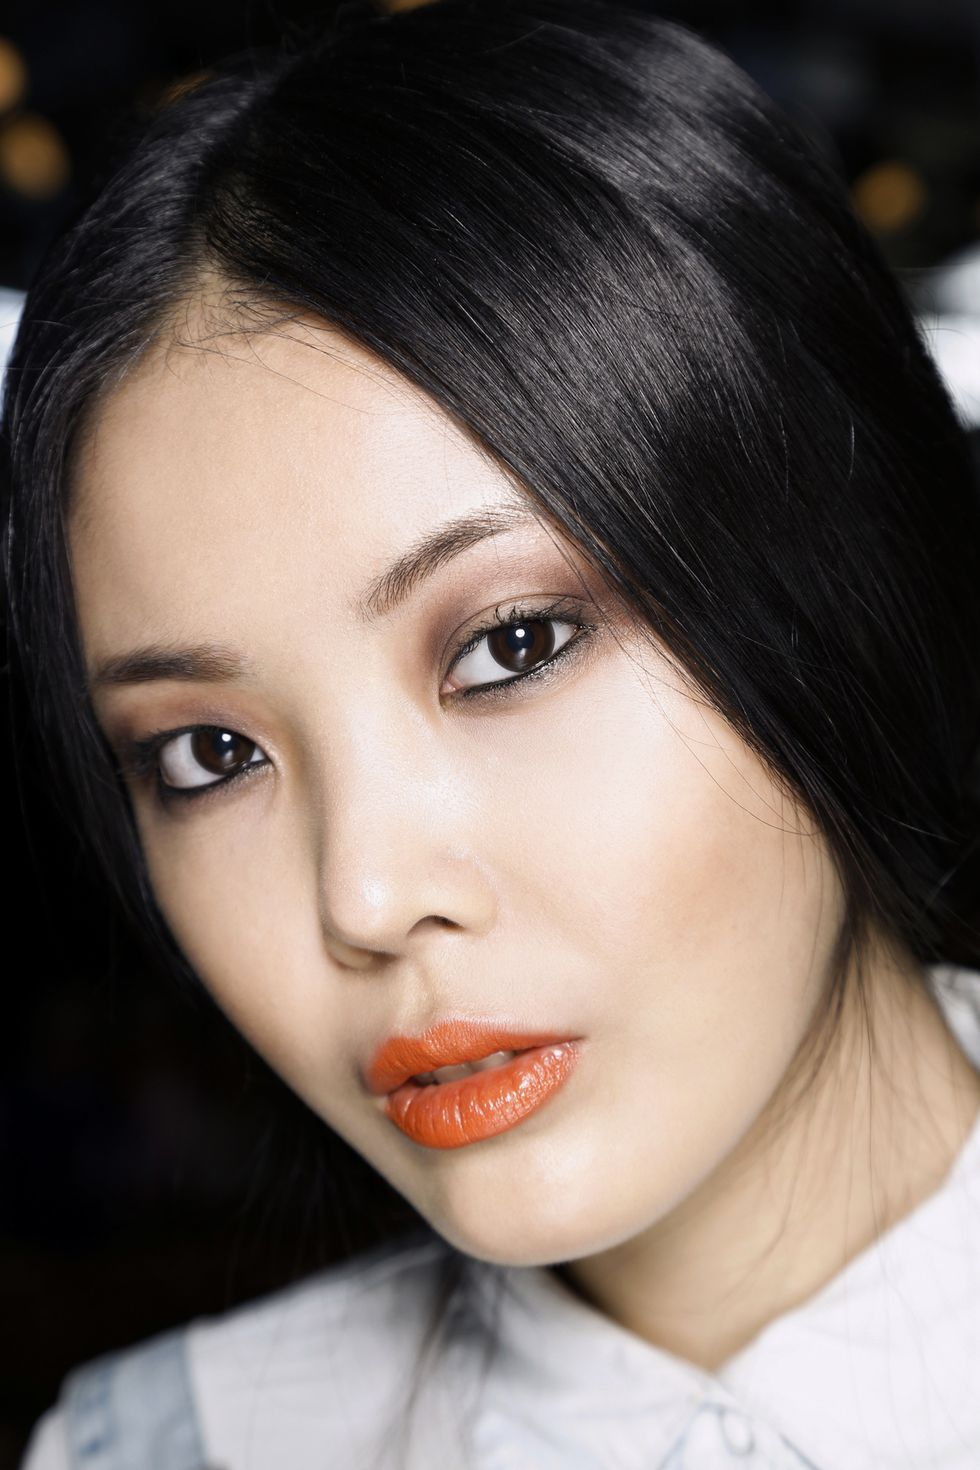 glam-how-to-do-your-makeup-for-wedding-guest-beauty-for-brides-orange-lips.jpg